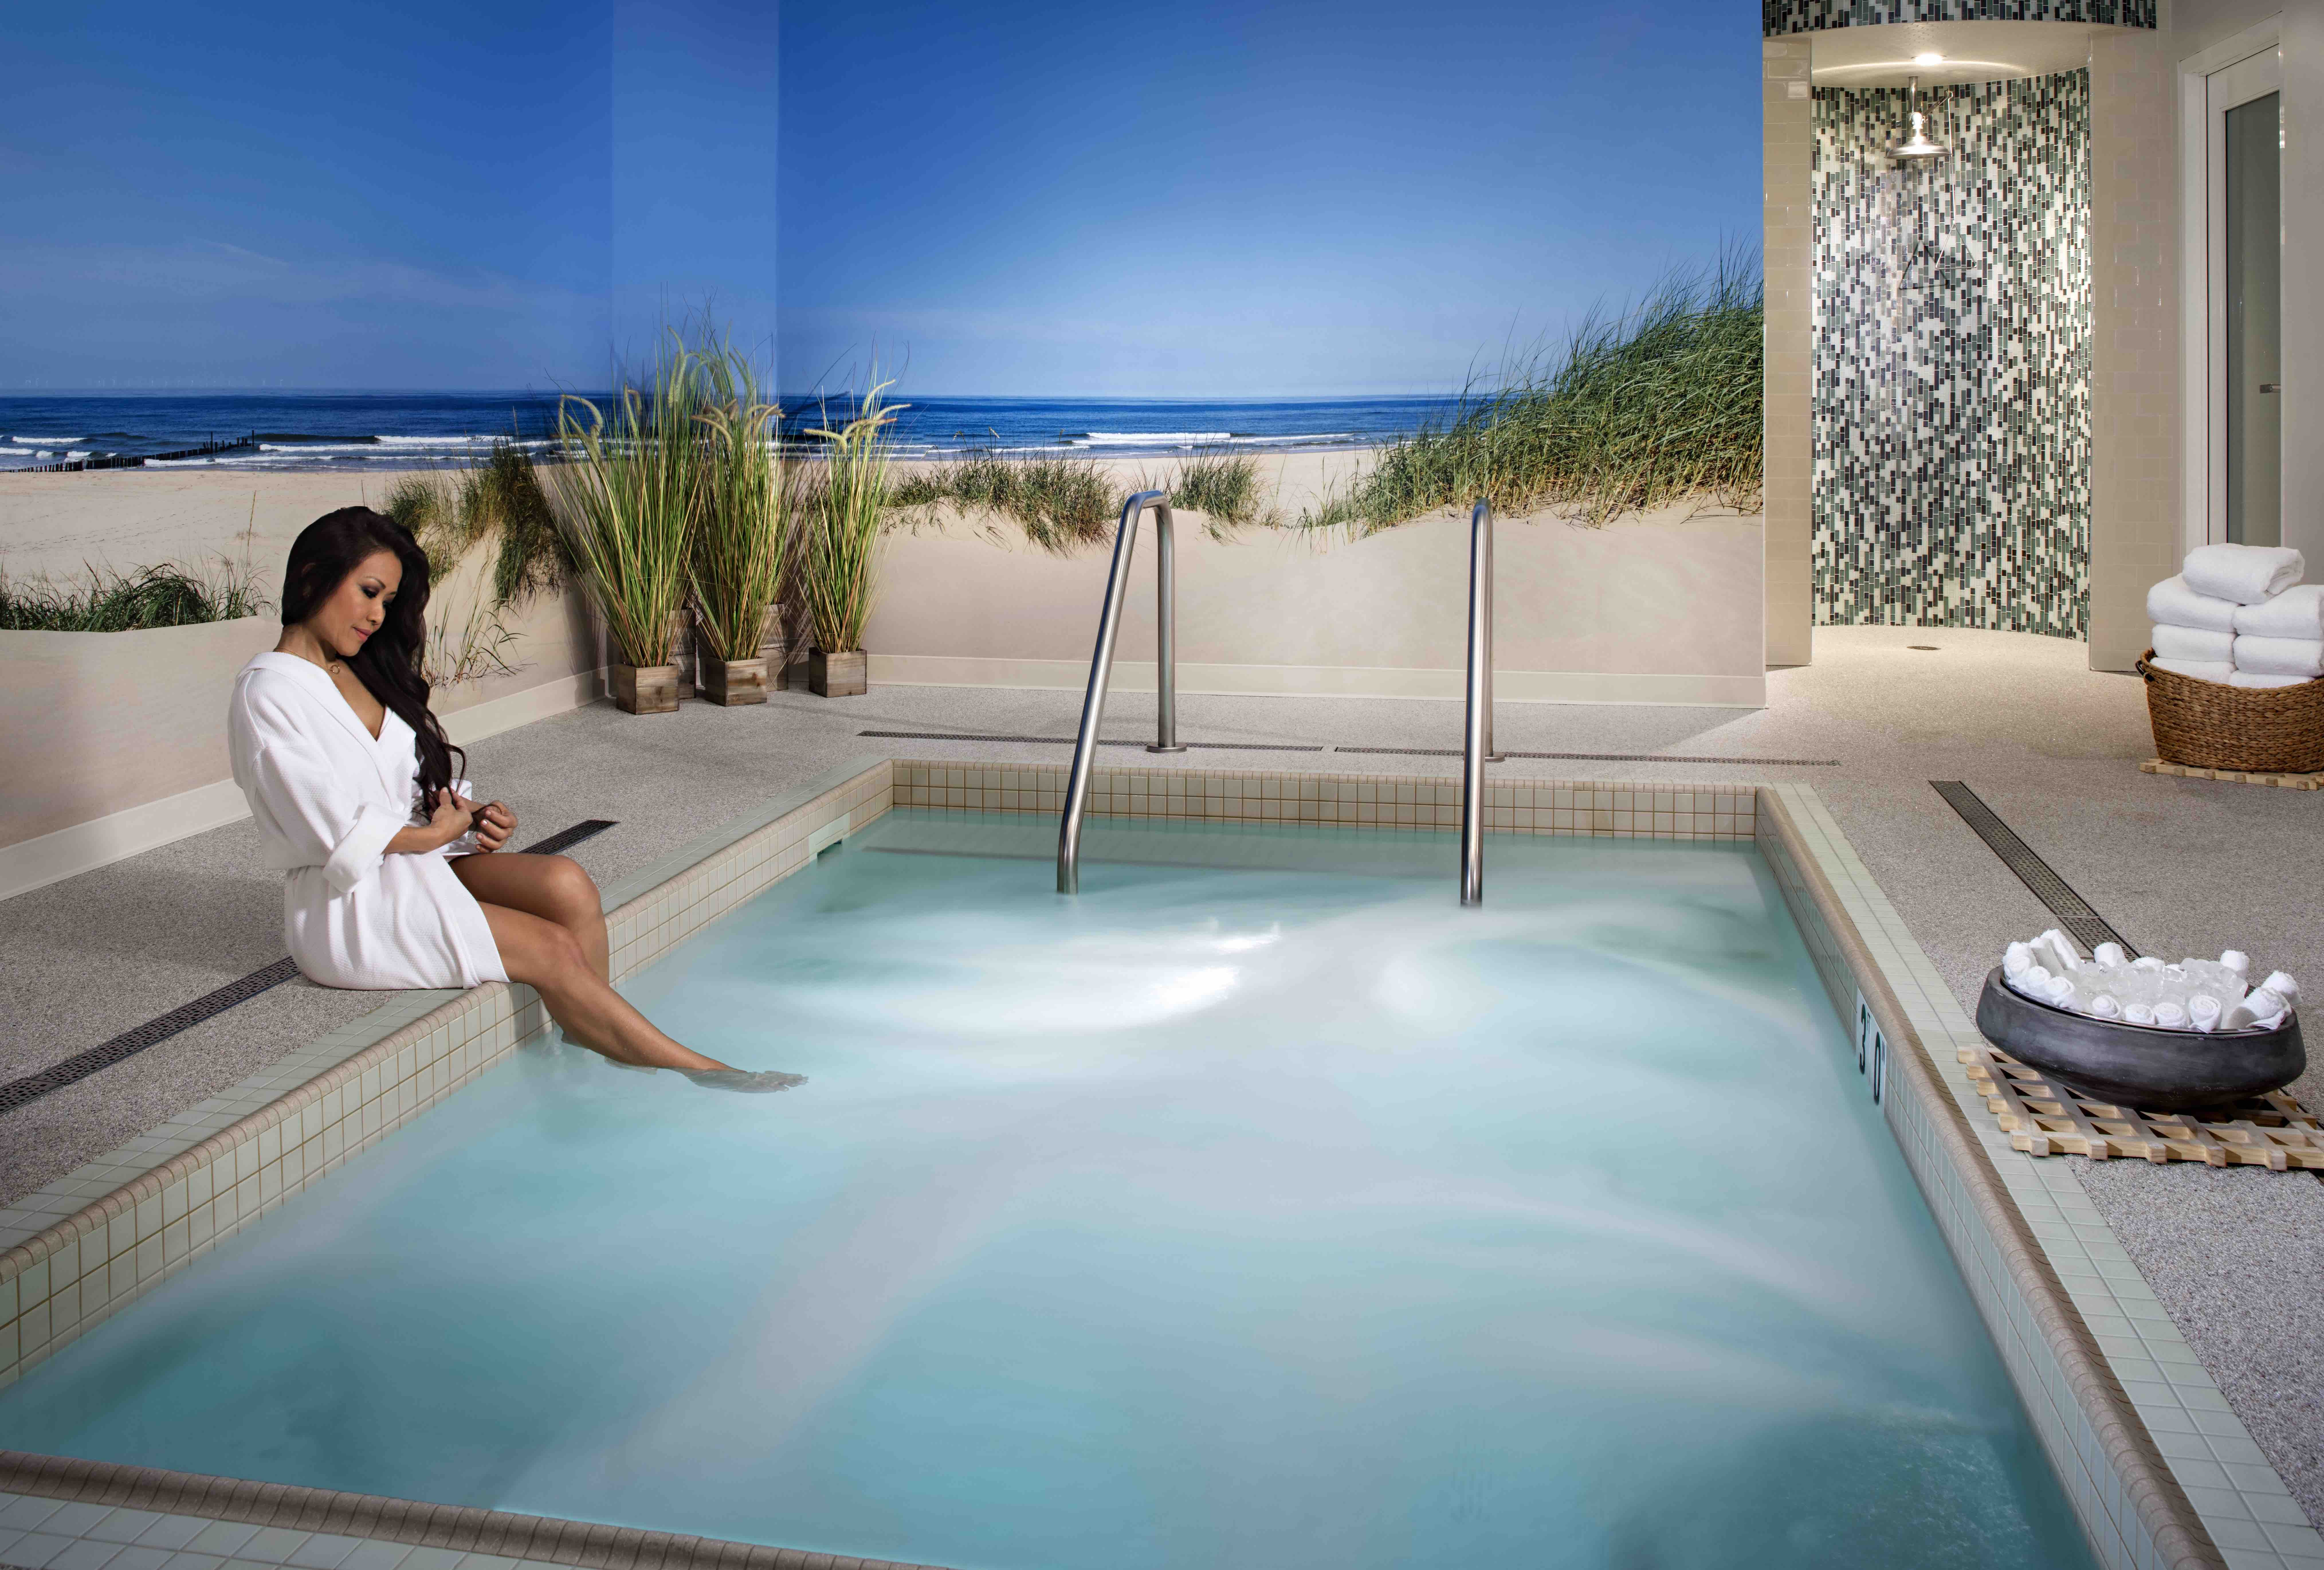 Celebrate National Relaxation Month at Burke Williams Day Spa this August